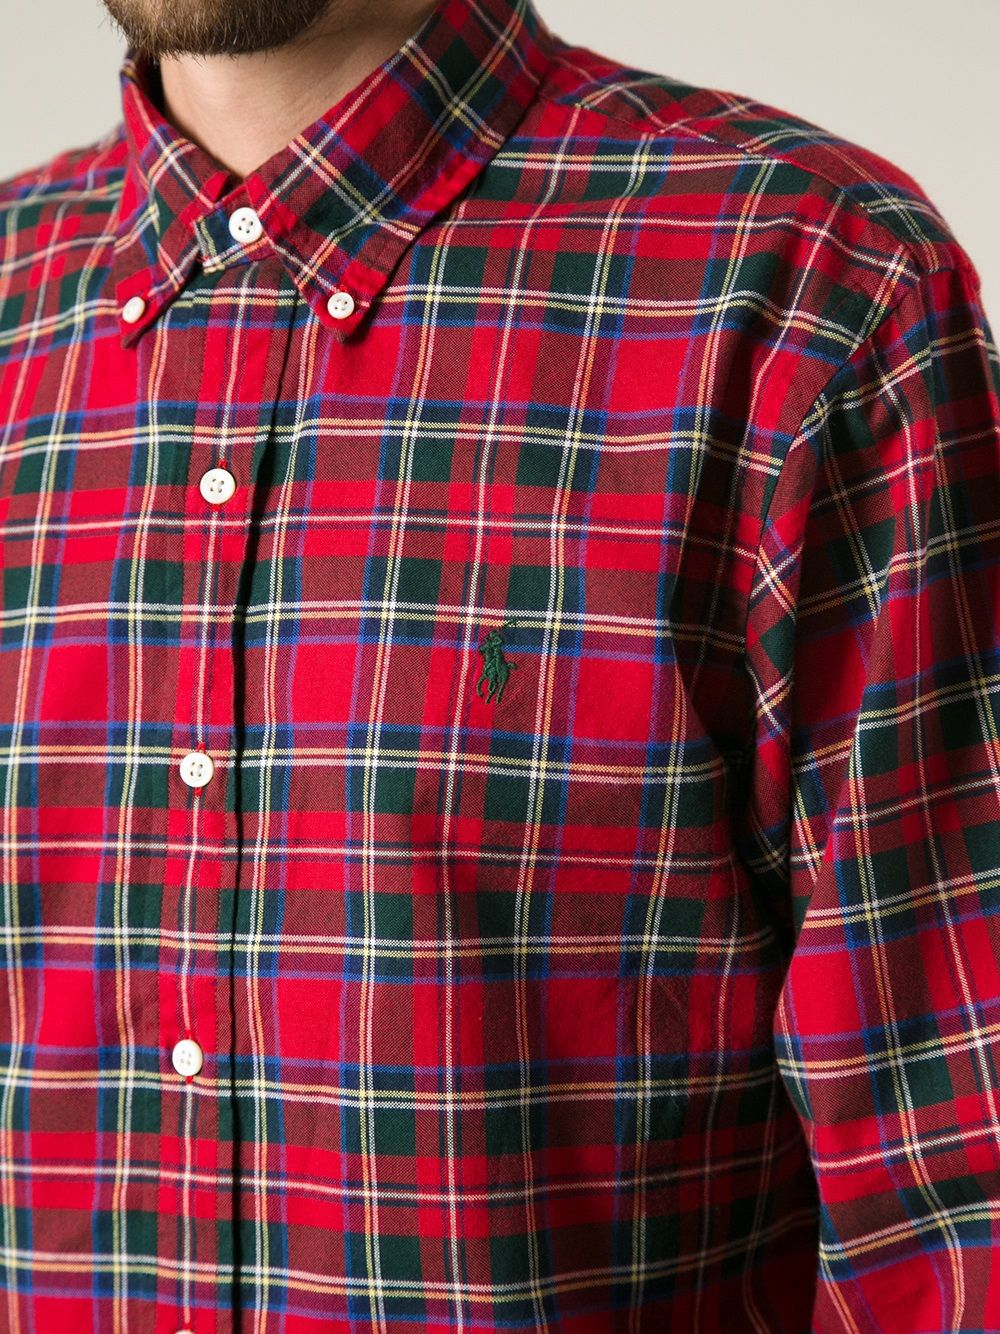 d6a5a485c Polo ralph lauren Plaid Button Down Shirt in Red for Men